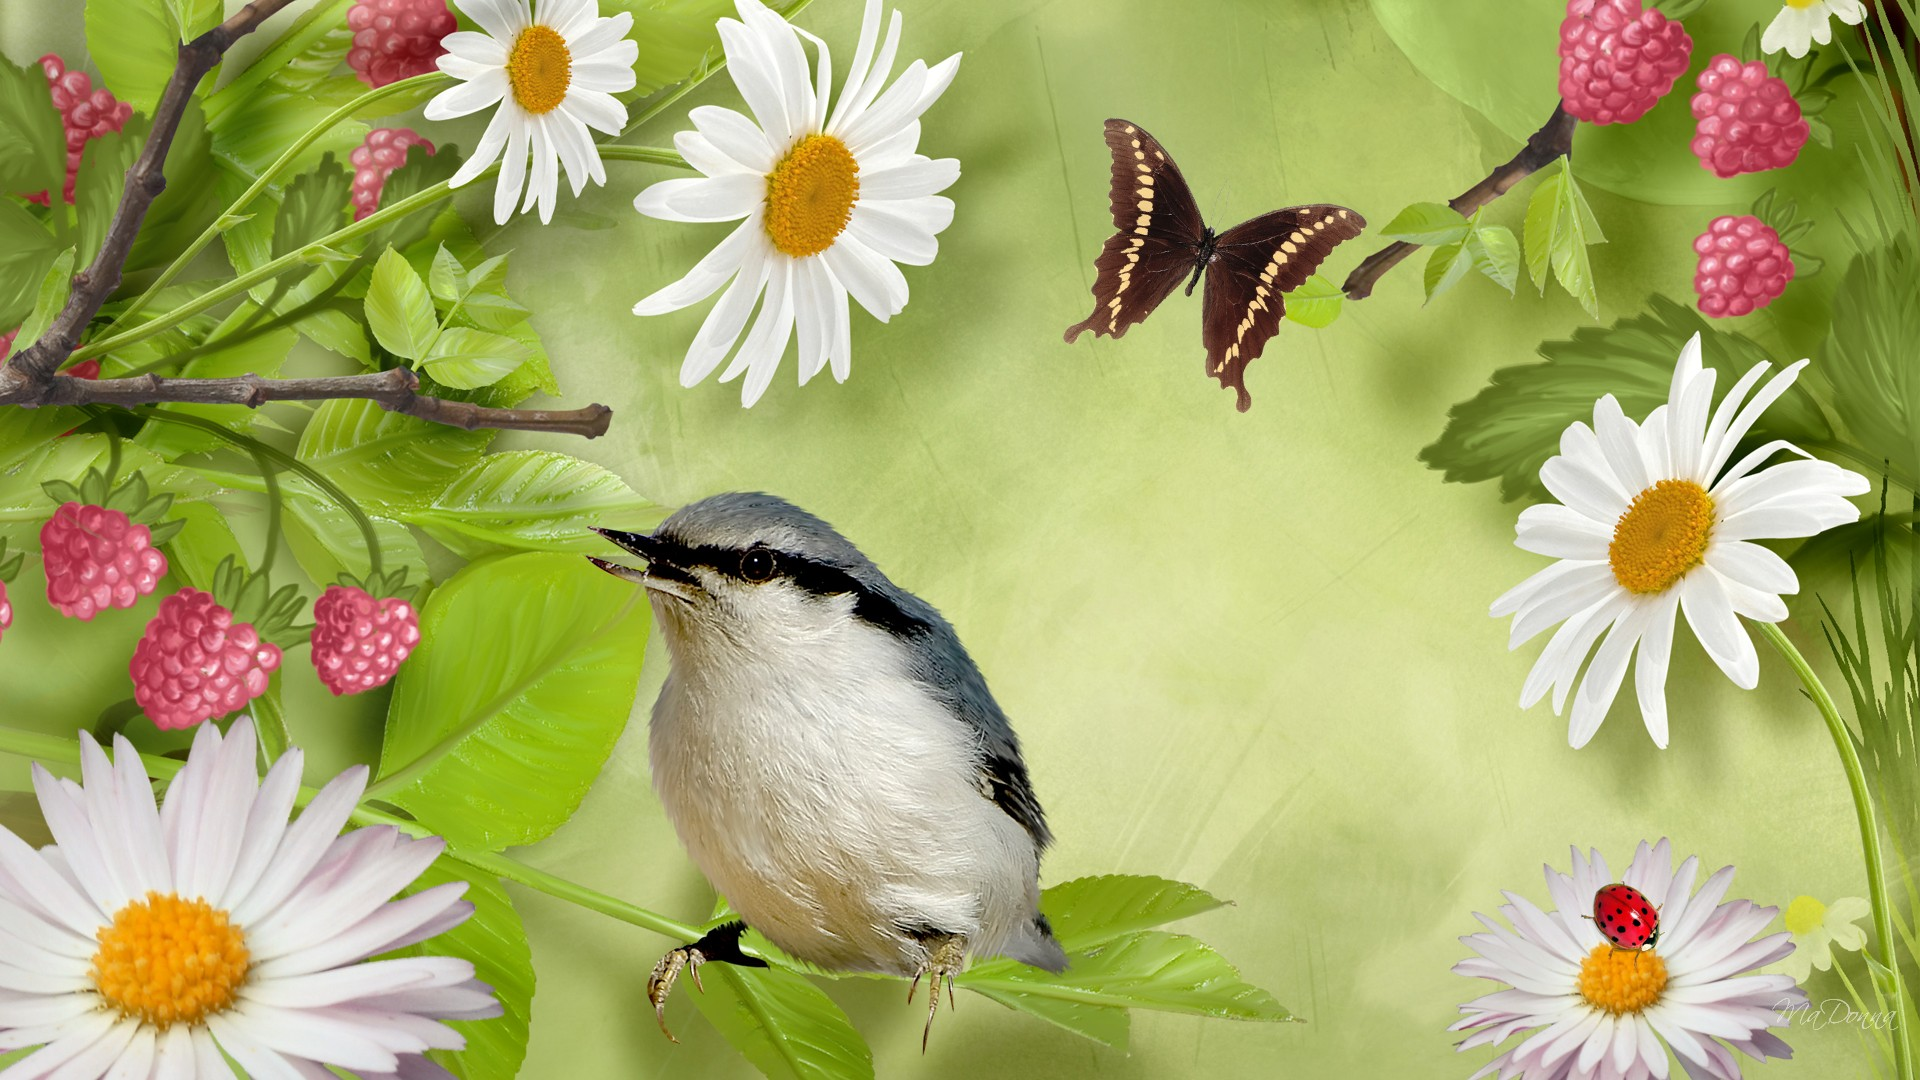 How to Attract Birds and Butterflies to Your Garden